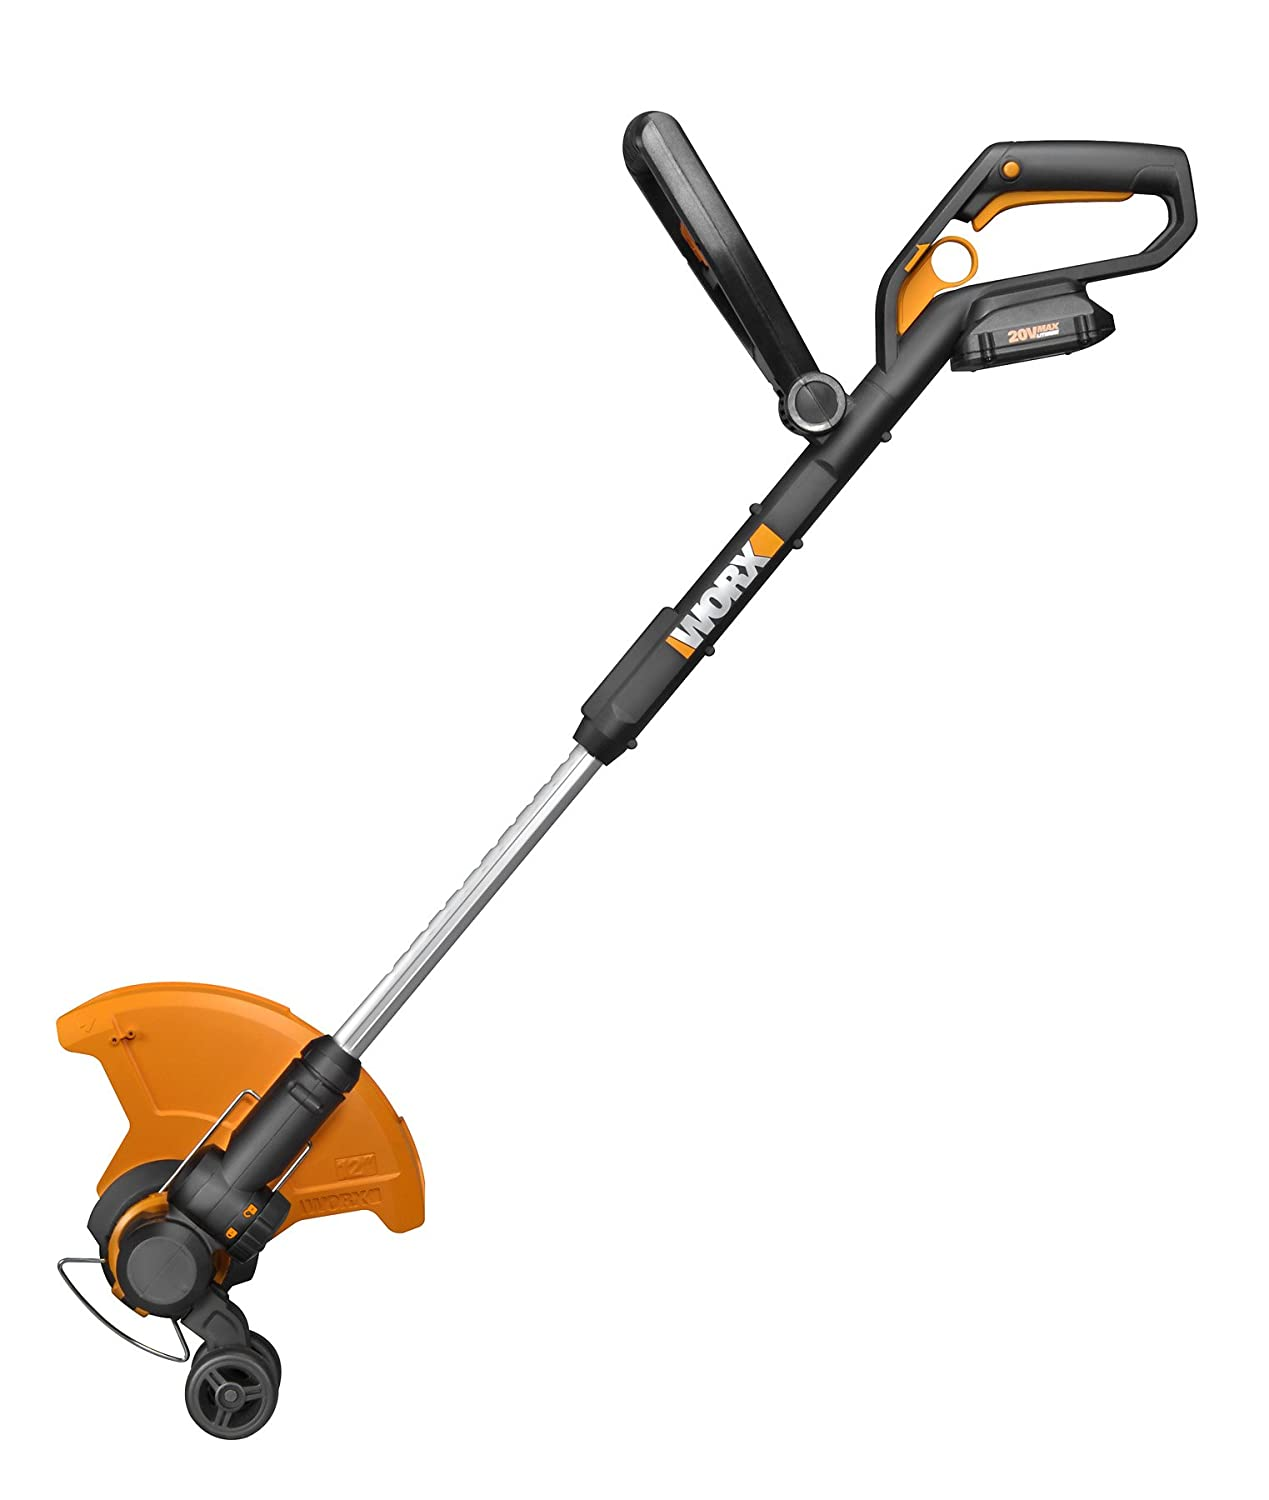 Worx Wg175 32 Volt Lithium Max Cordless Grass Trimmer And